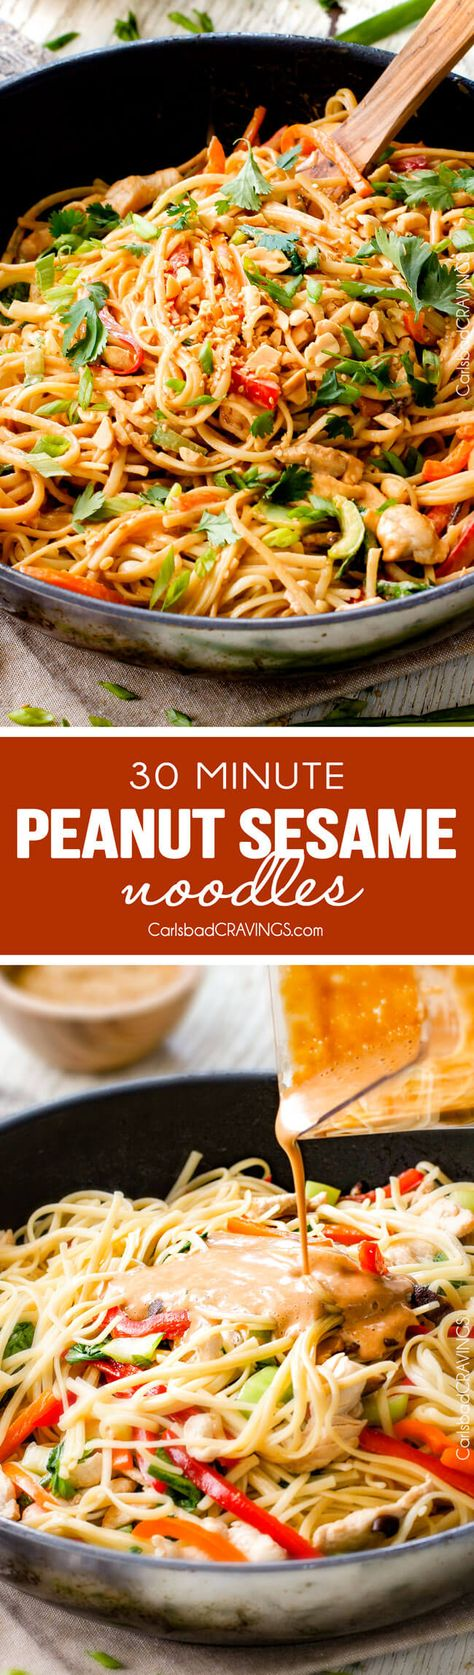 30 Minute Peanut Sesame Noodles (with Chicken and Veggies) - super quick and easy meal all in one with the most amazing creamy peanut sesame sauce you will crave for days! via @carlsbadcraving